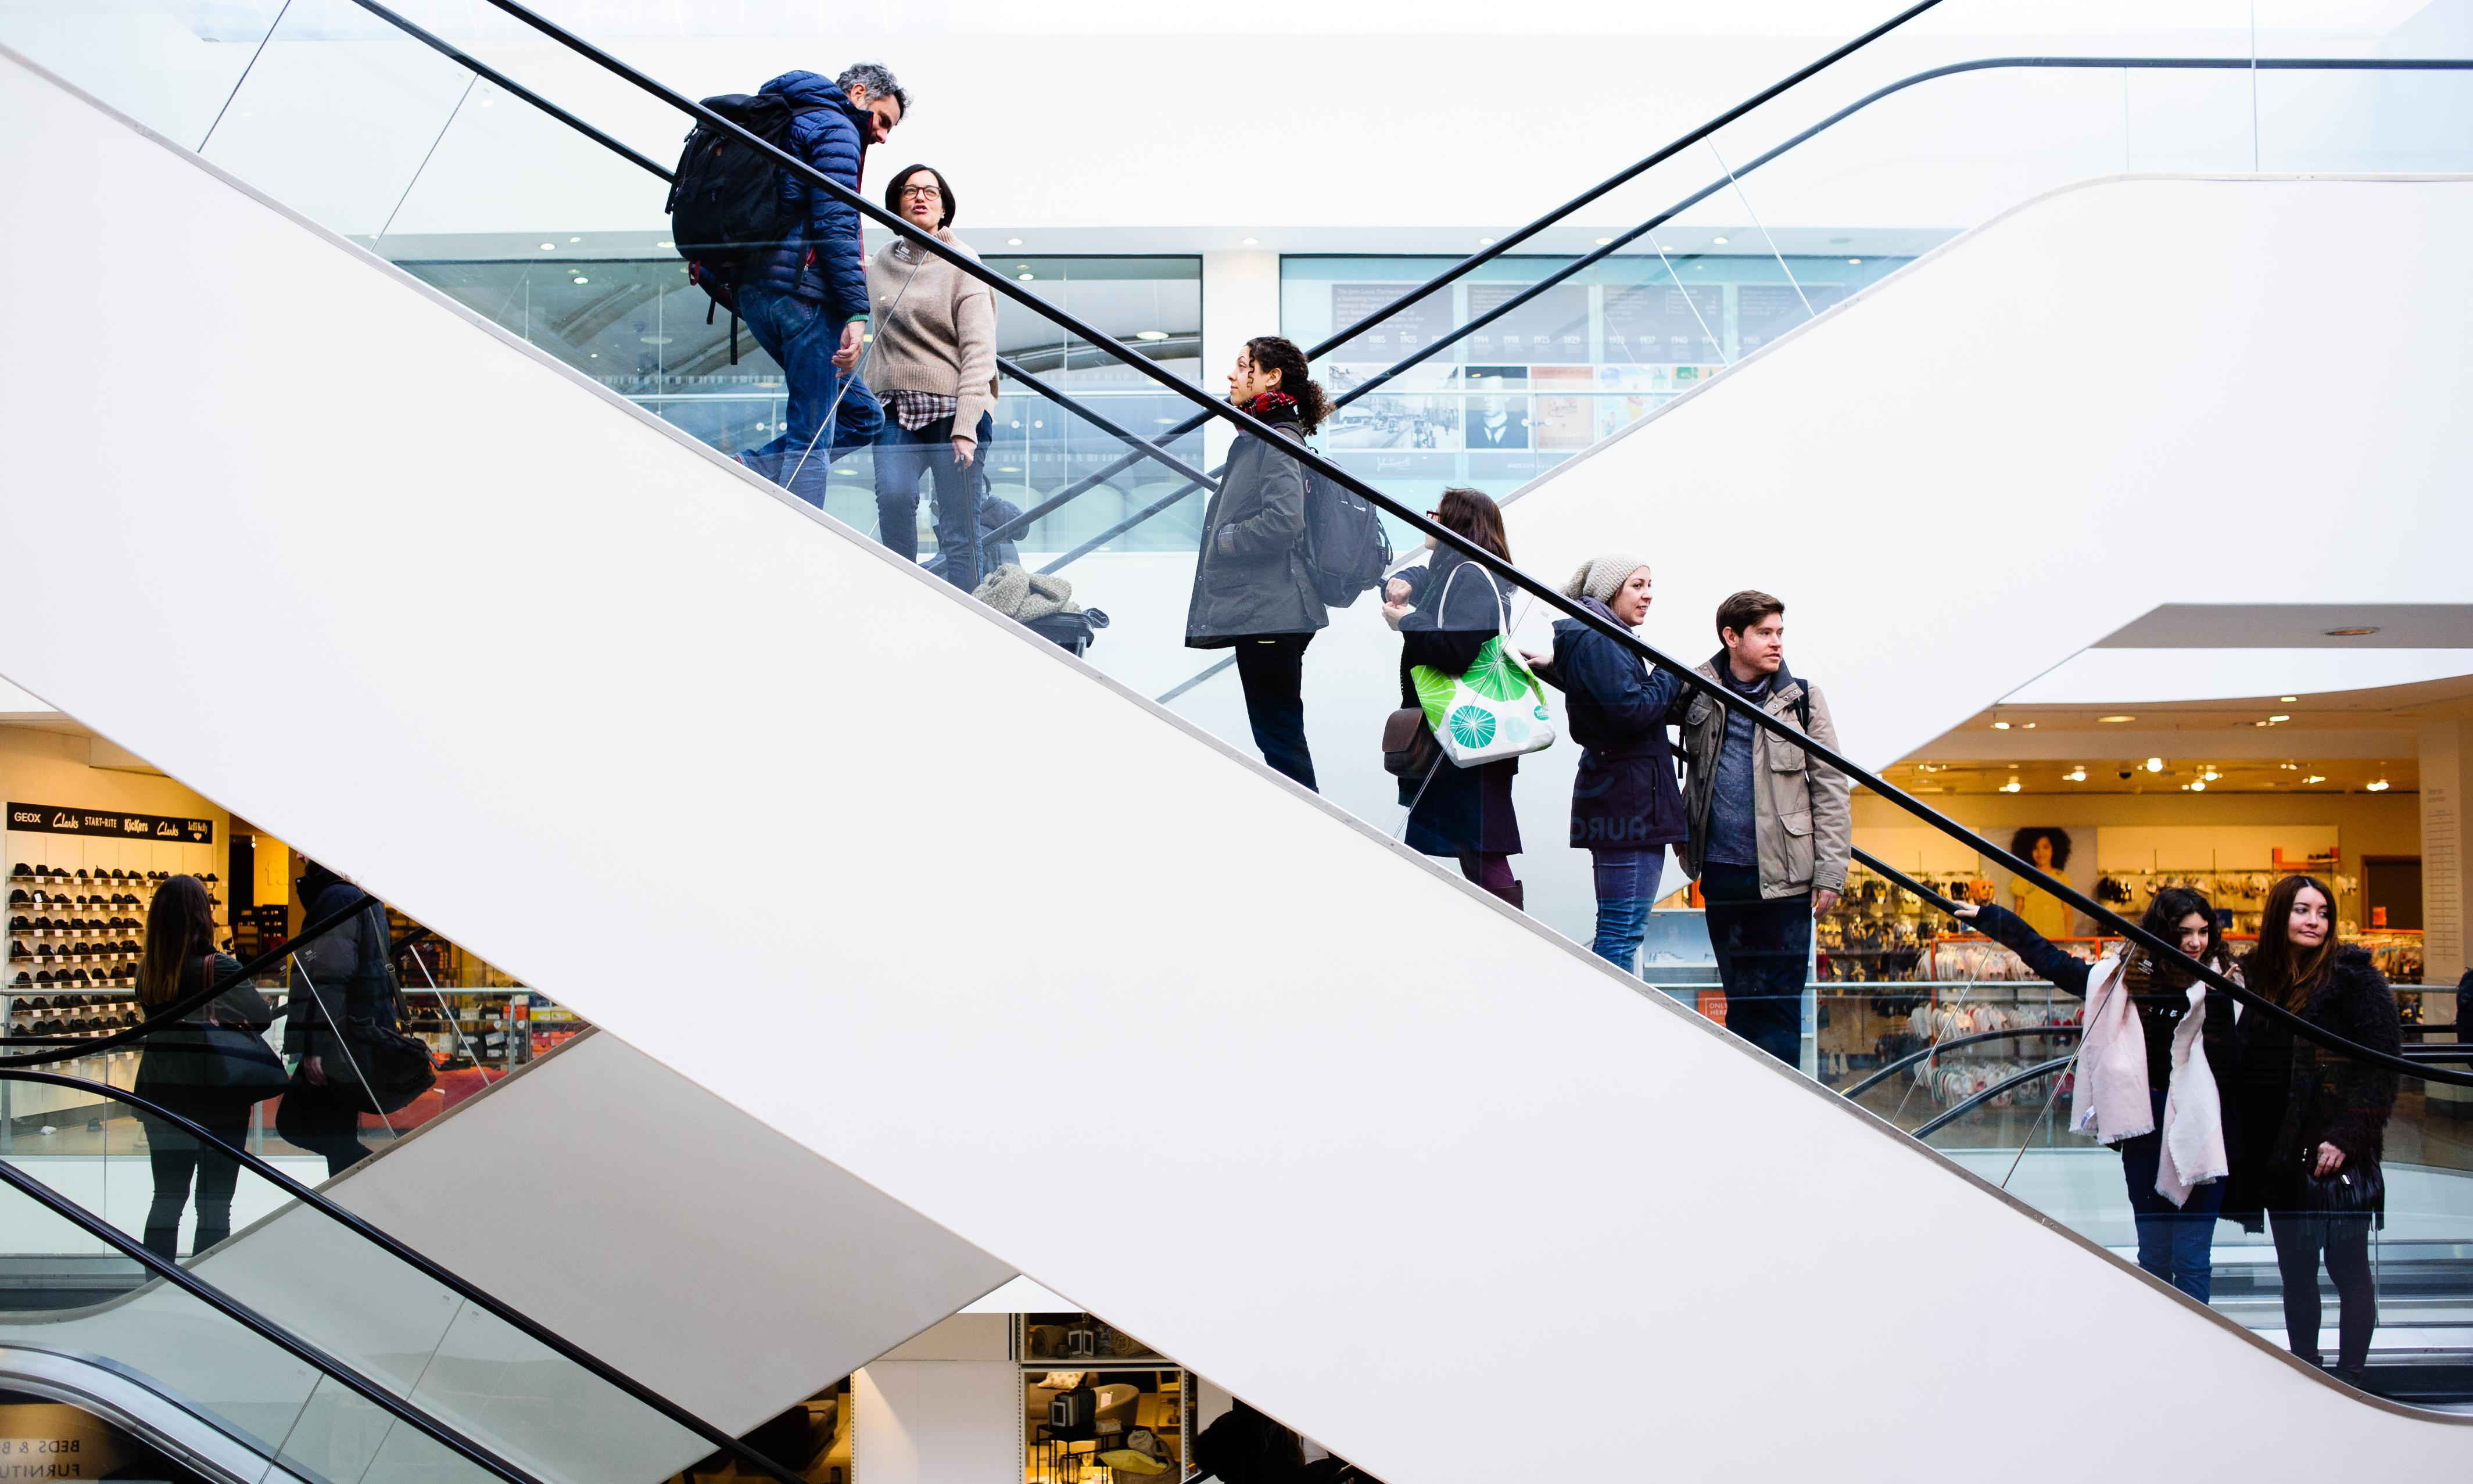 UK consumer confidence at highest level since 2009